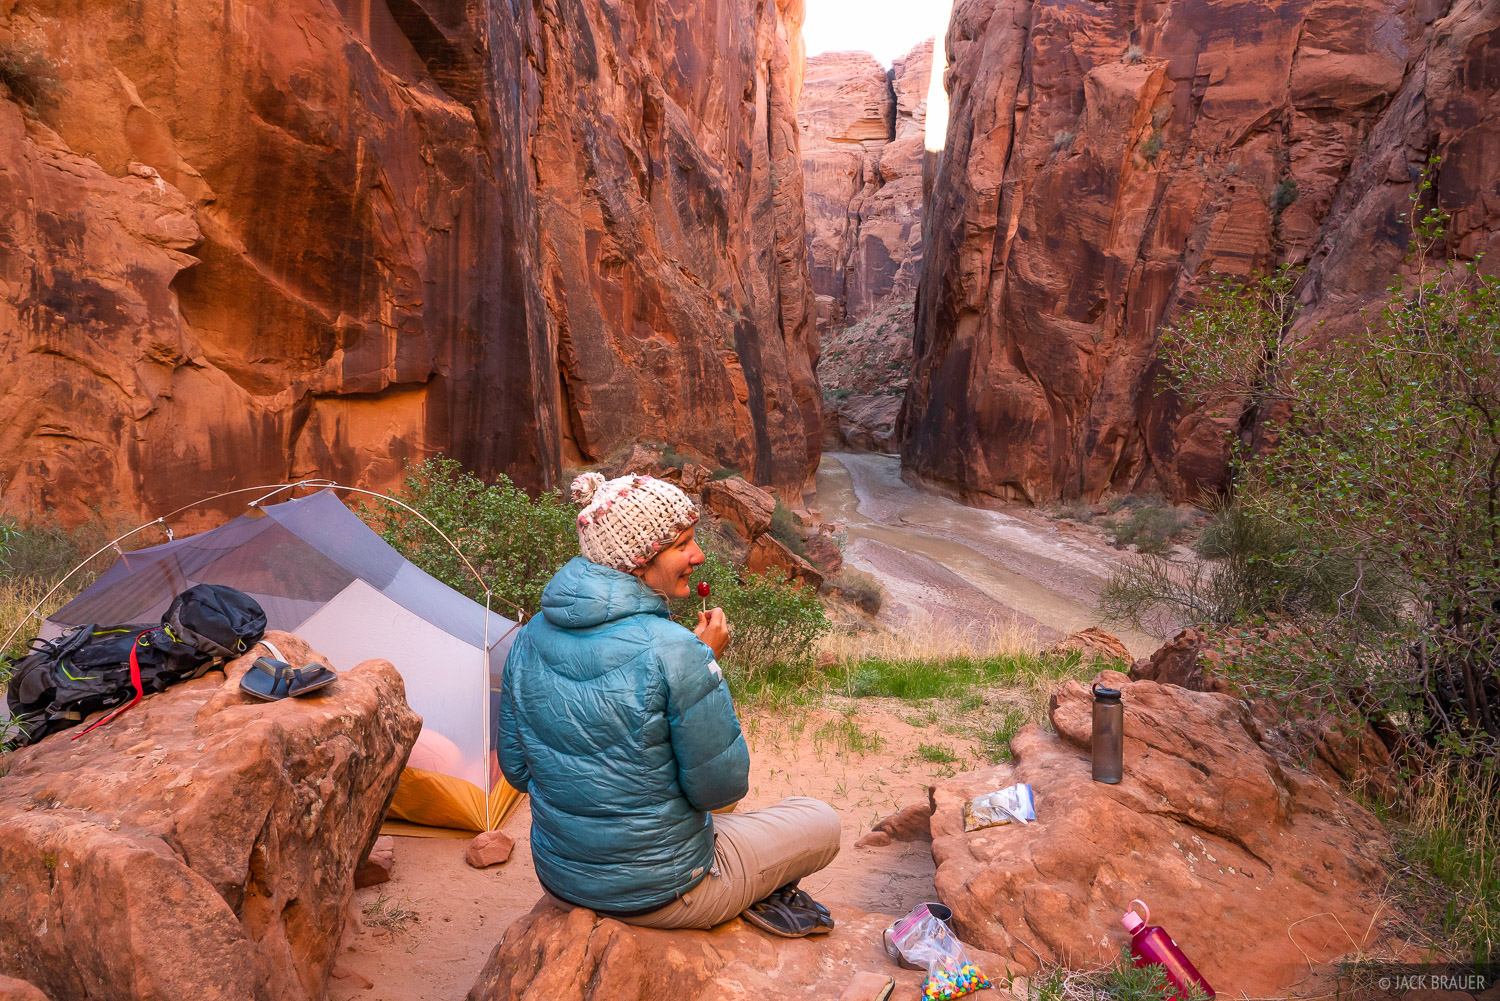 Camping above the Paria River in the Paria Canyon.